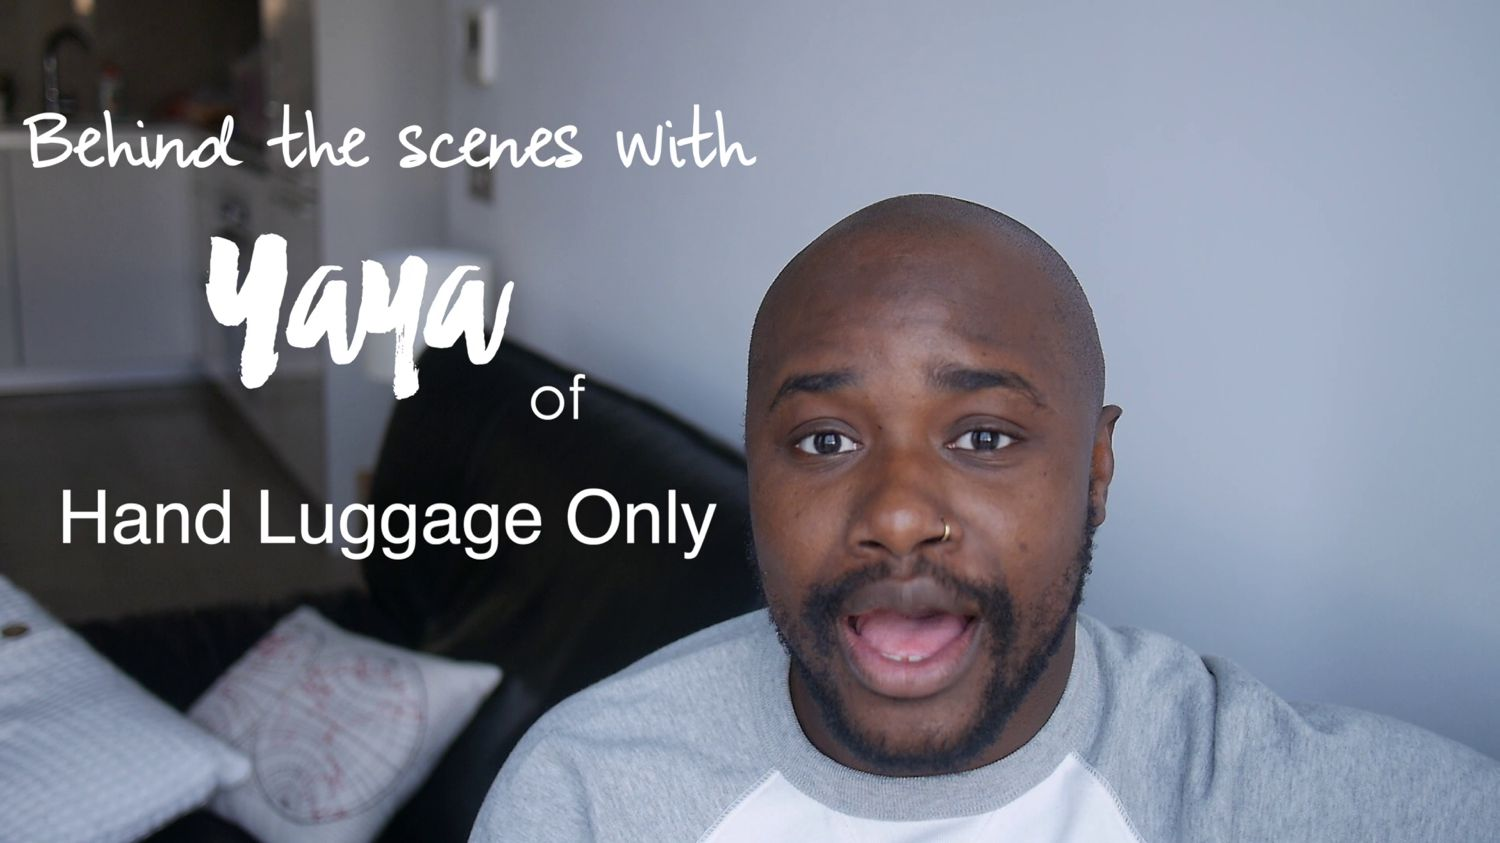 Behind the scenes of Hand Luggage Only with Yaya